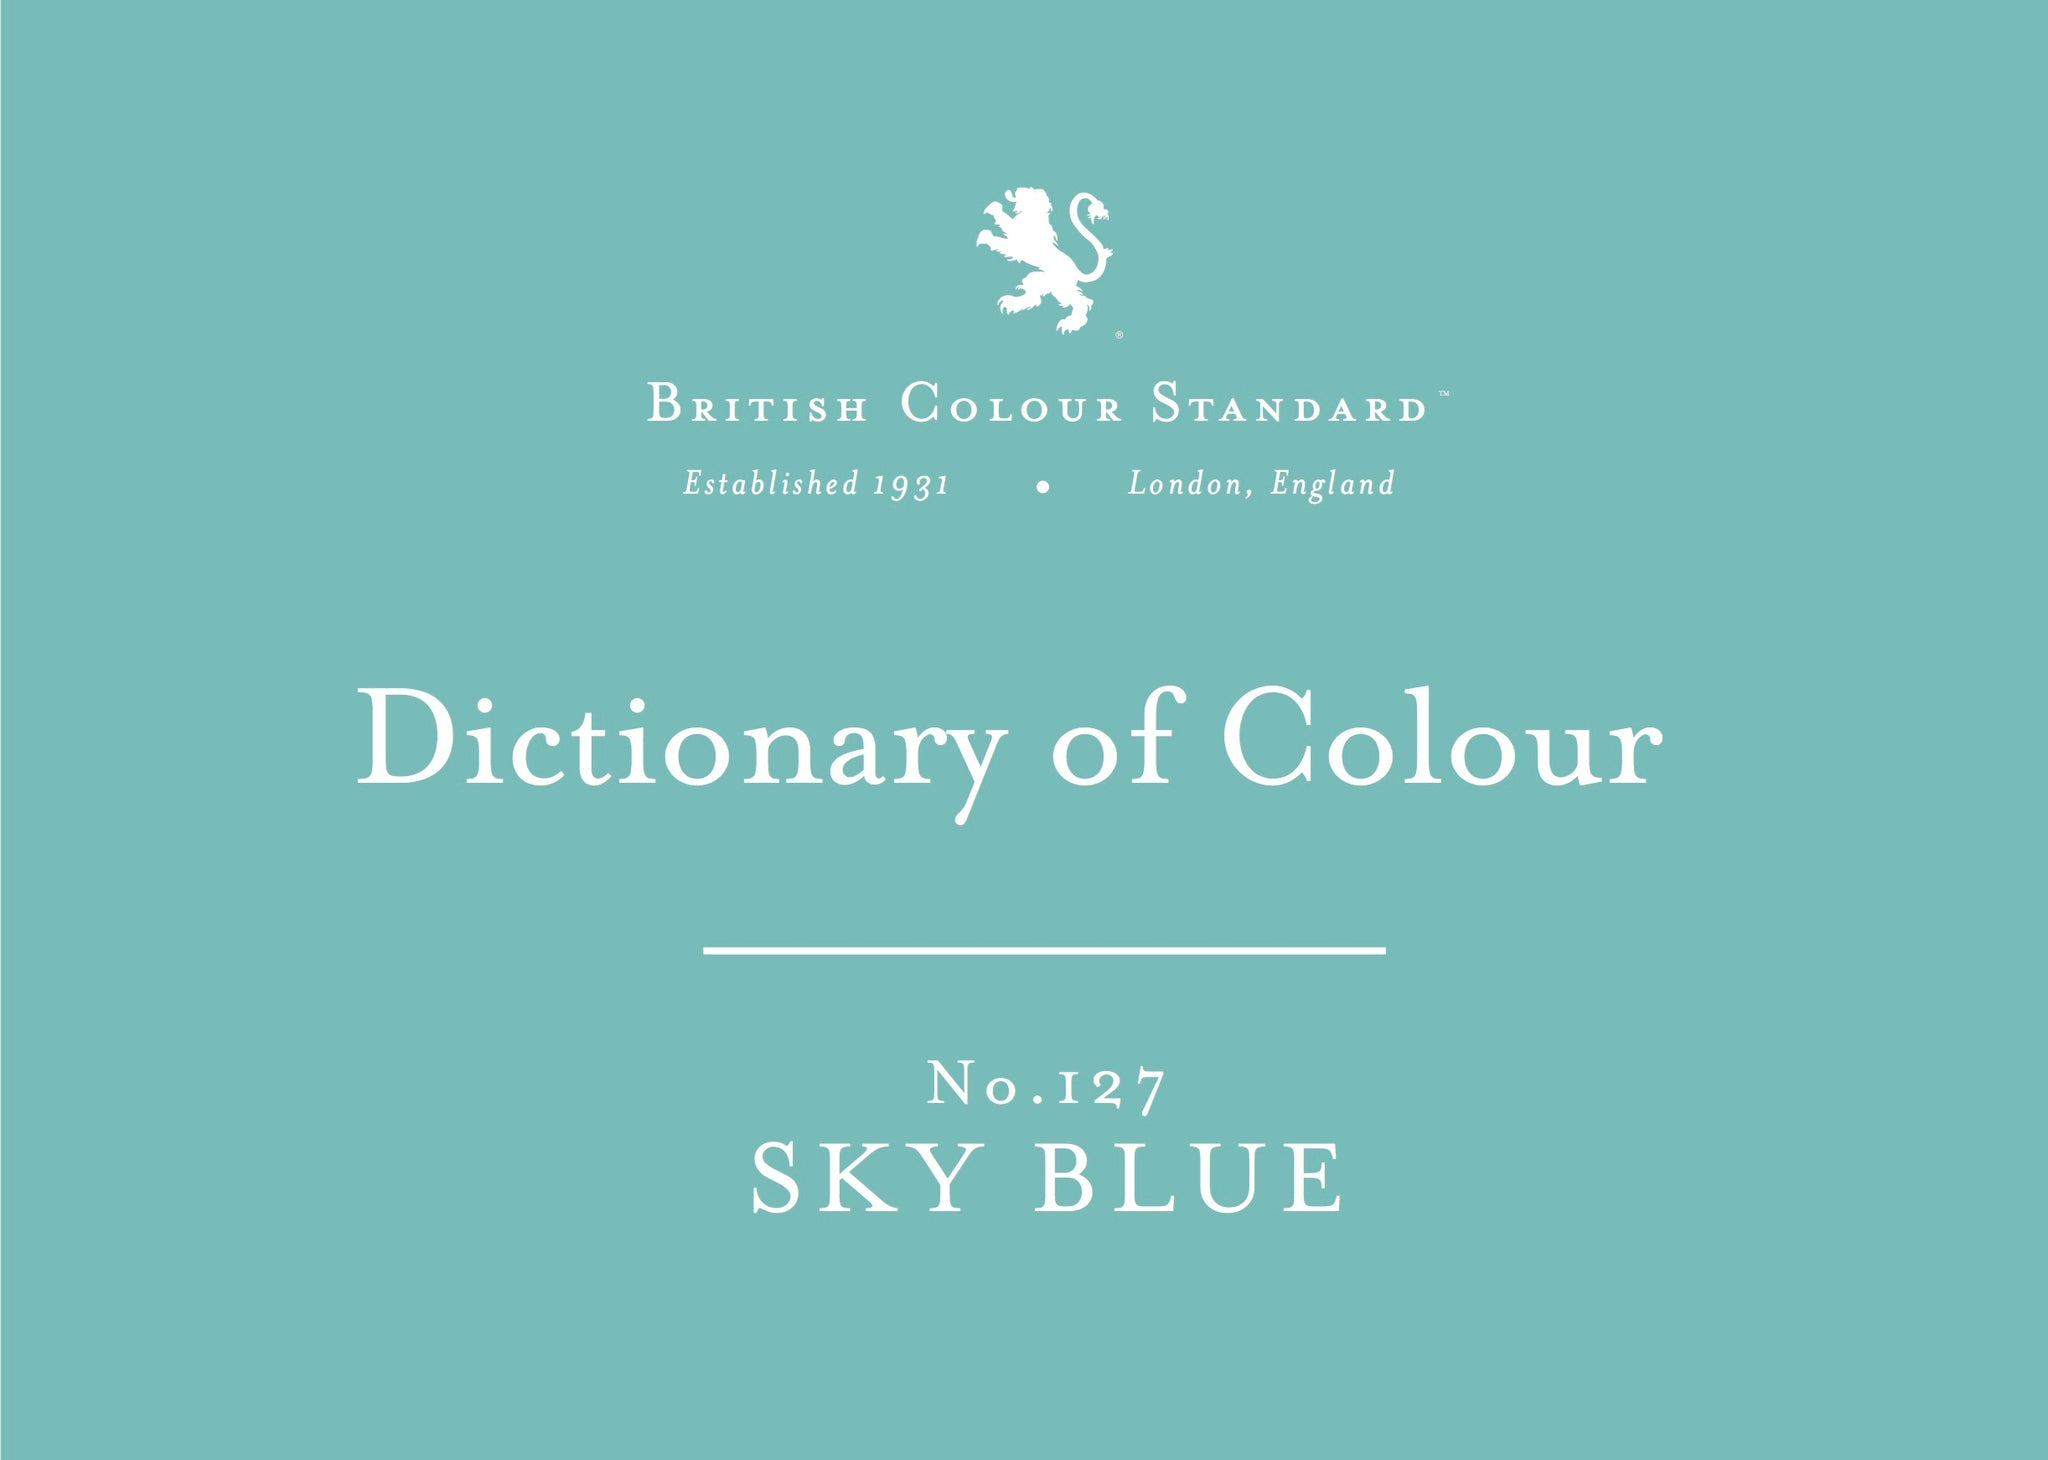 BRITISH COLOUR STANDARD - Sky Blue No. 127